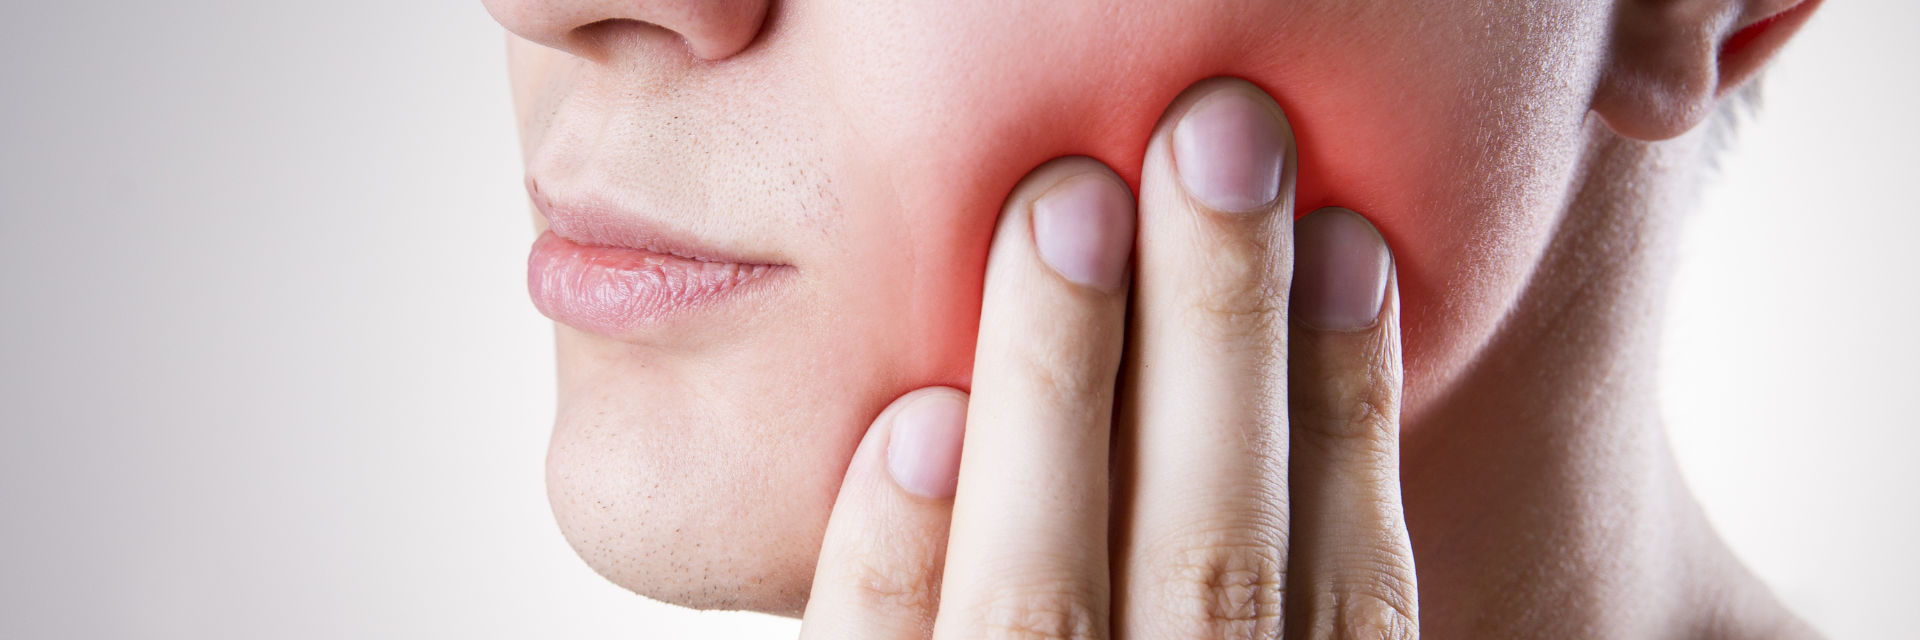 A person with dental pain caused by gum disease.